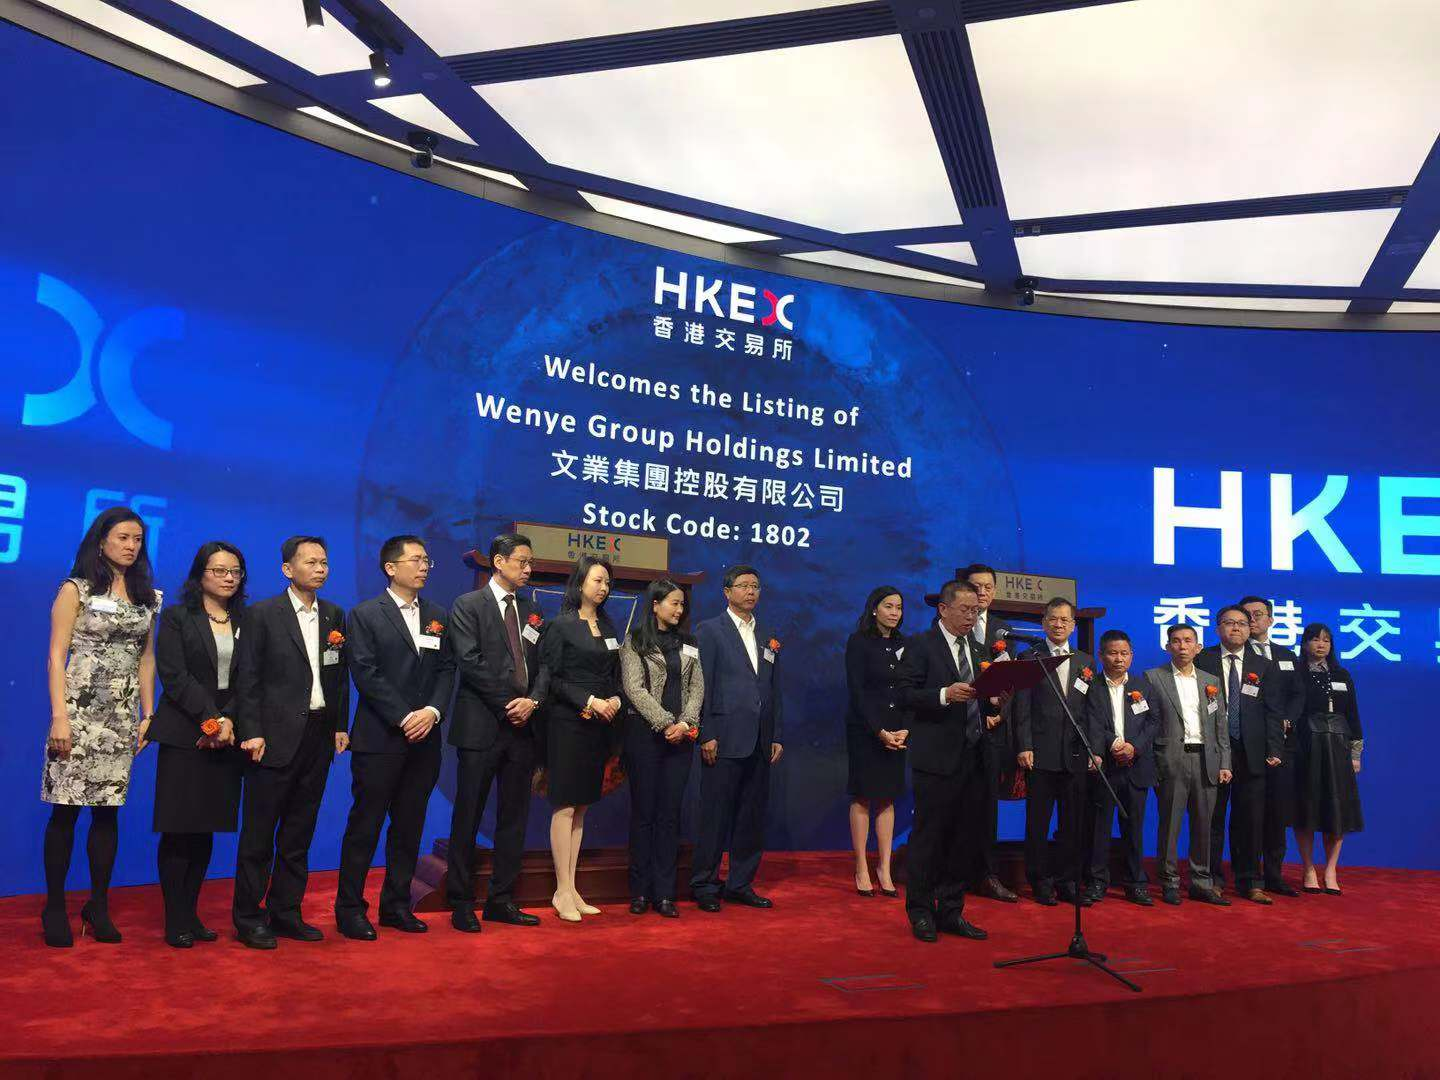 Congratulations to the listing of Wenye Group